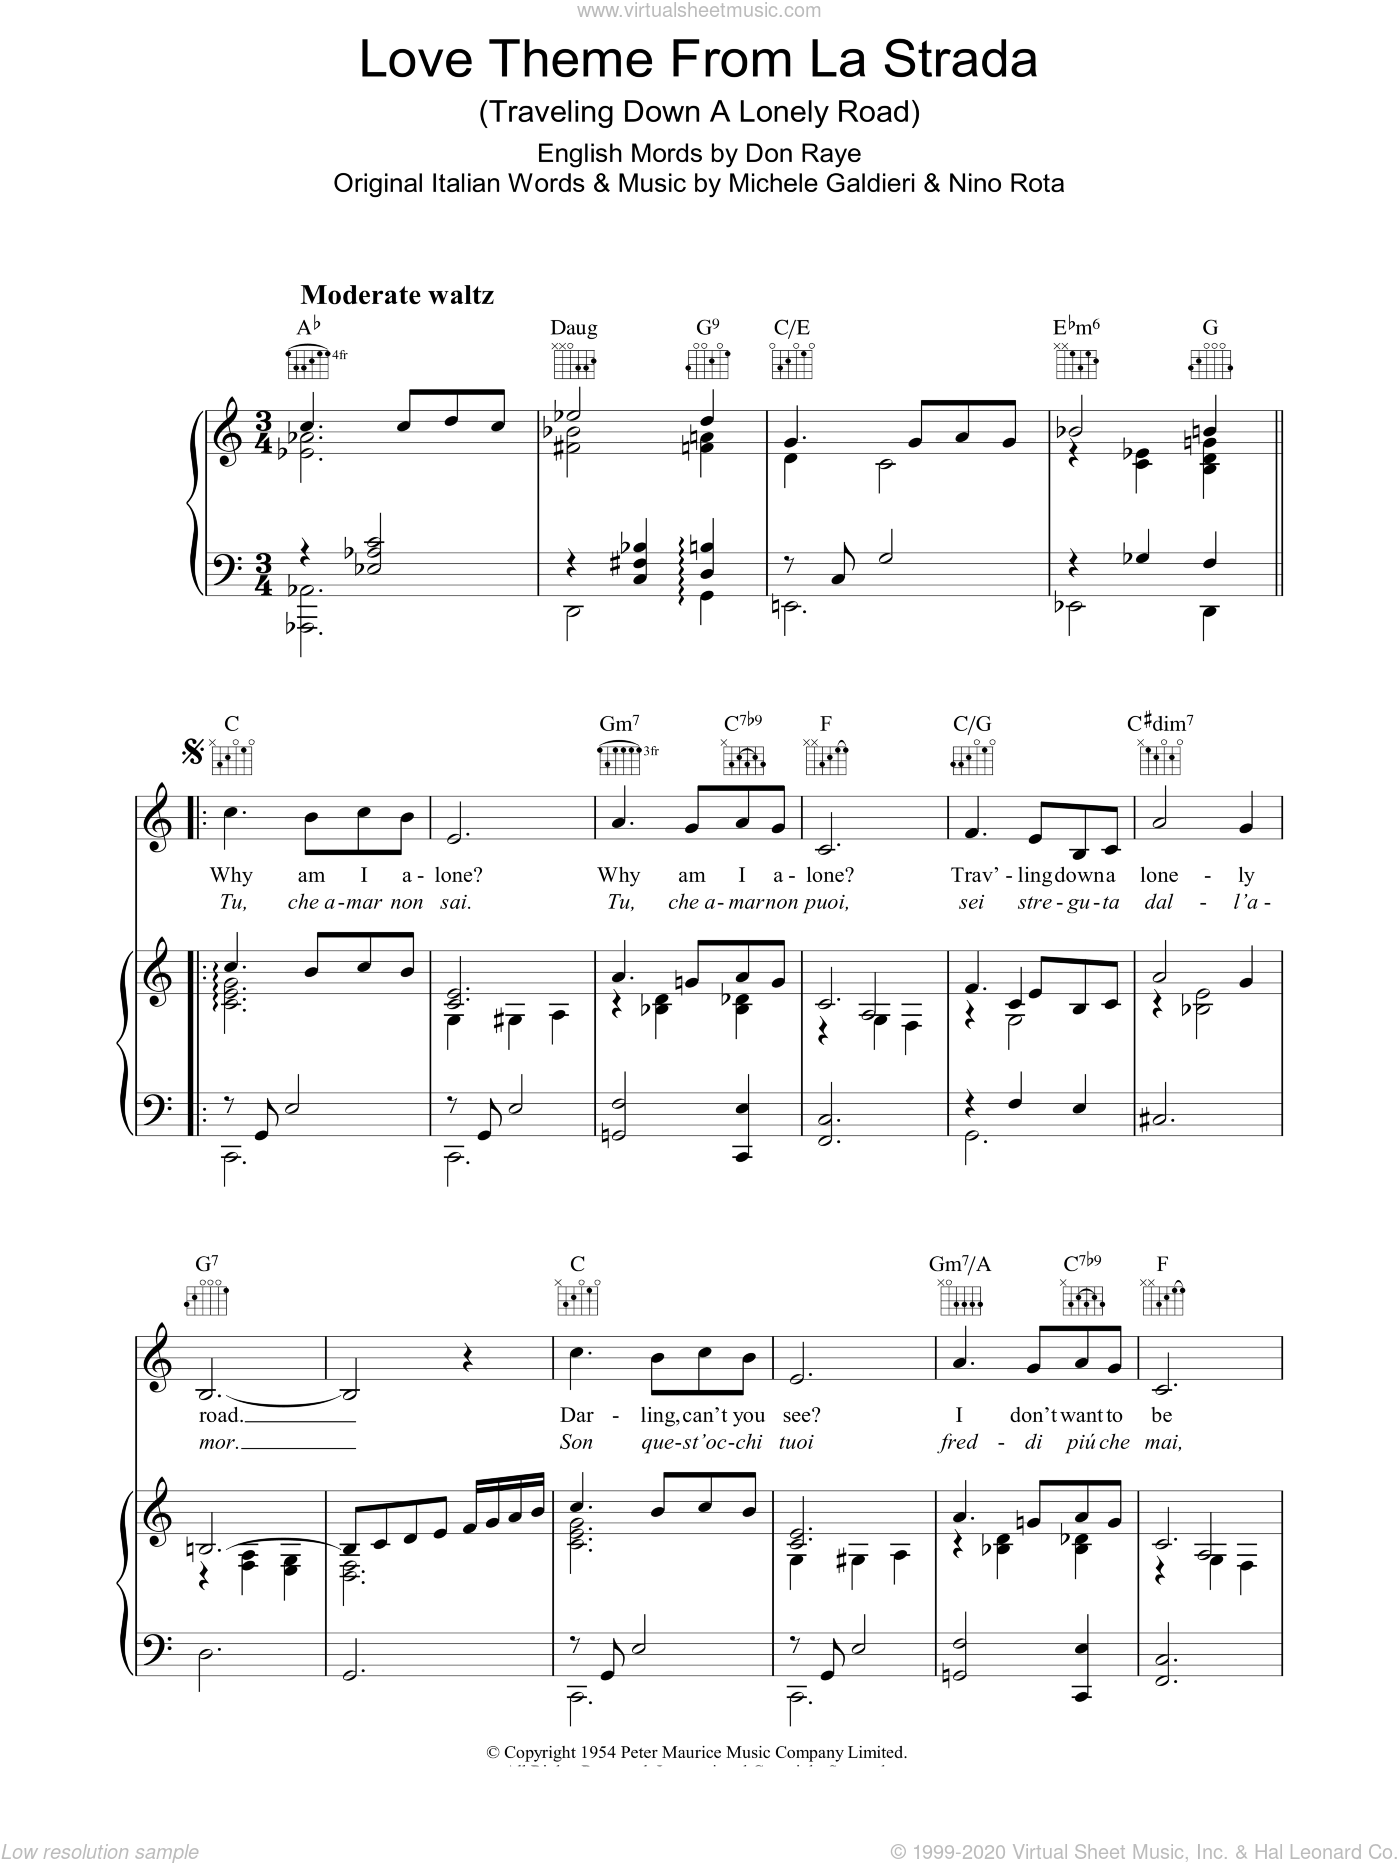 Love Theme (from La Strada) sheet music for voice, piano or guitar by Nino Rota, Don Raye and Michele Galdieri, intermediate skill level